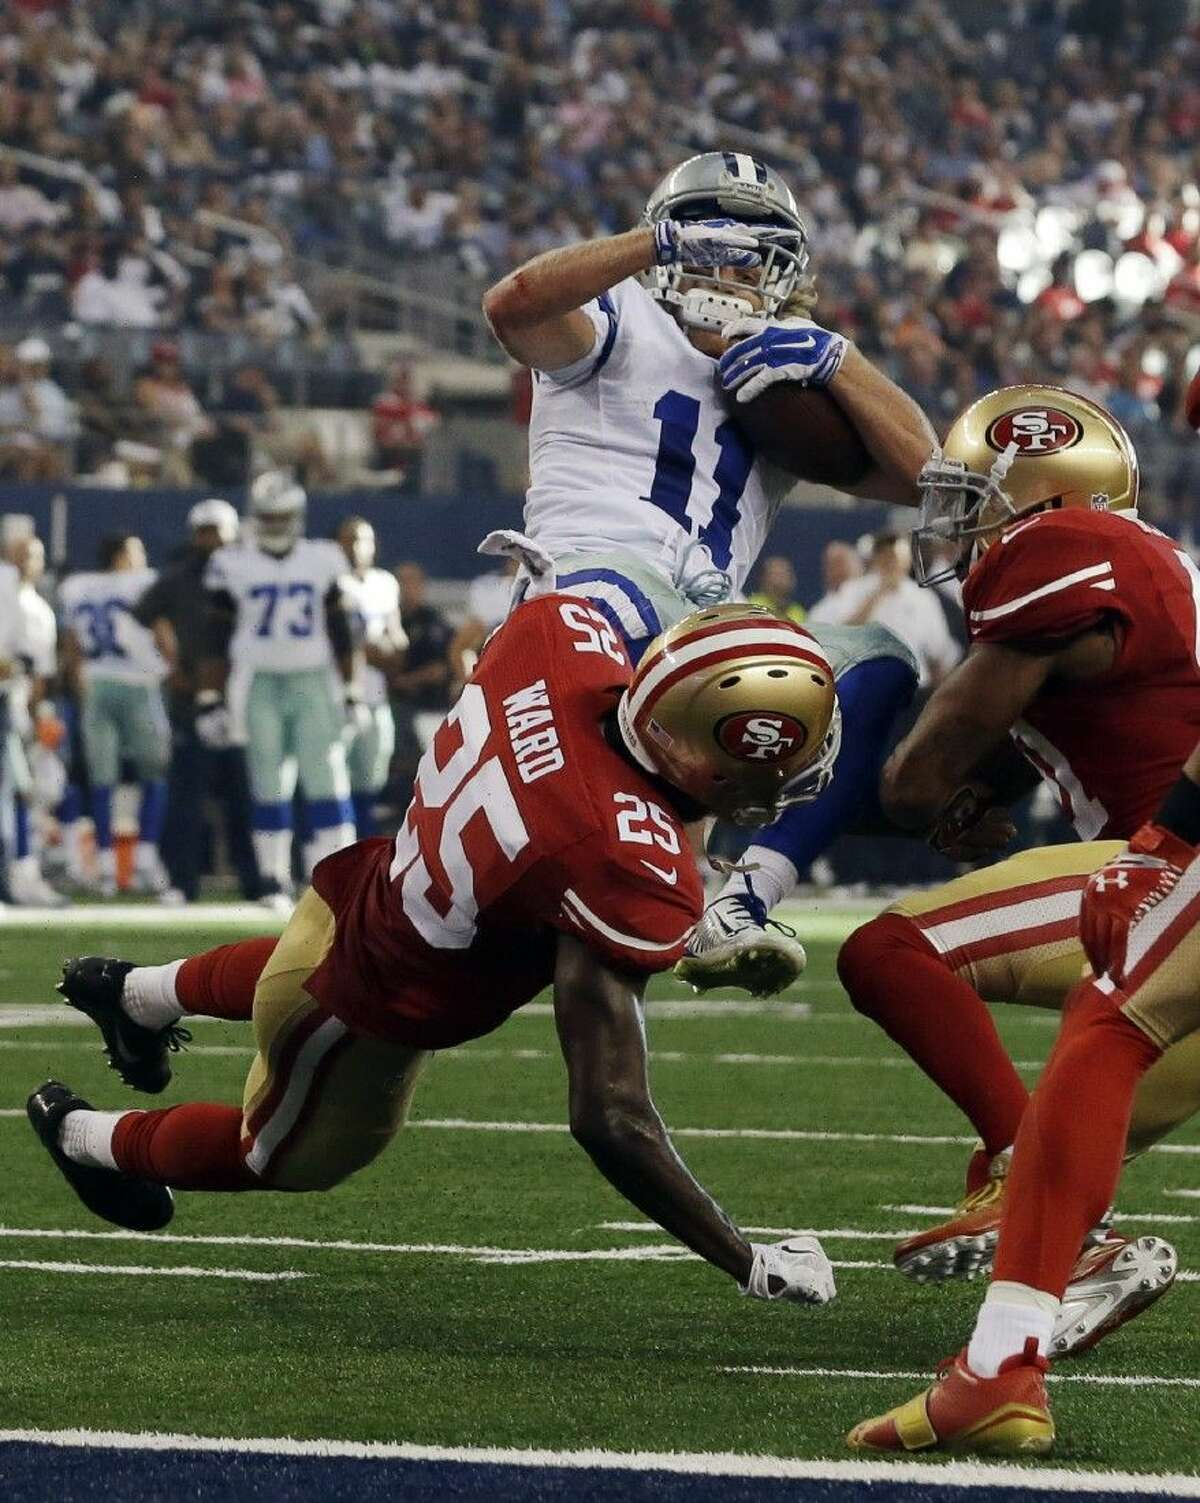 AP photoDallas Cowboys wide receiver Cole Beasley (11) is tackled by the 49ers' Jimmie Ward, left, and strong safety Antoine Bethea. The 49ers won 28-17.